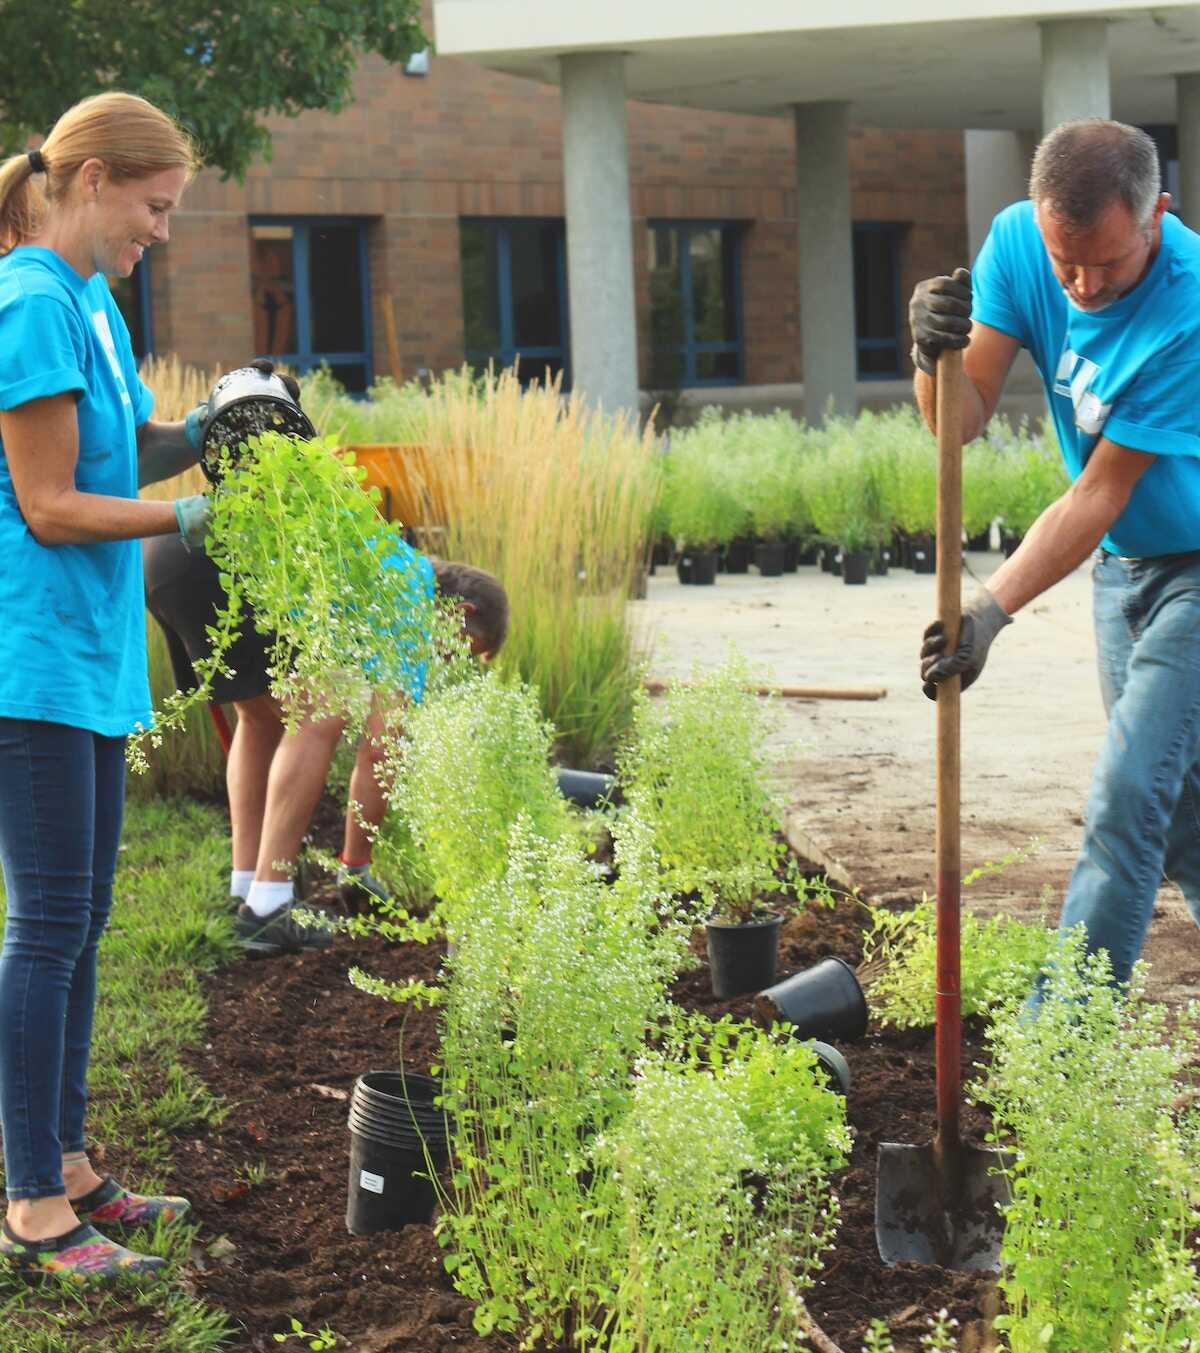 Volunteers in blue t-shirts planting a garden